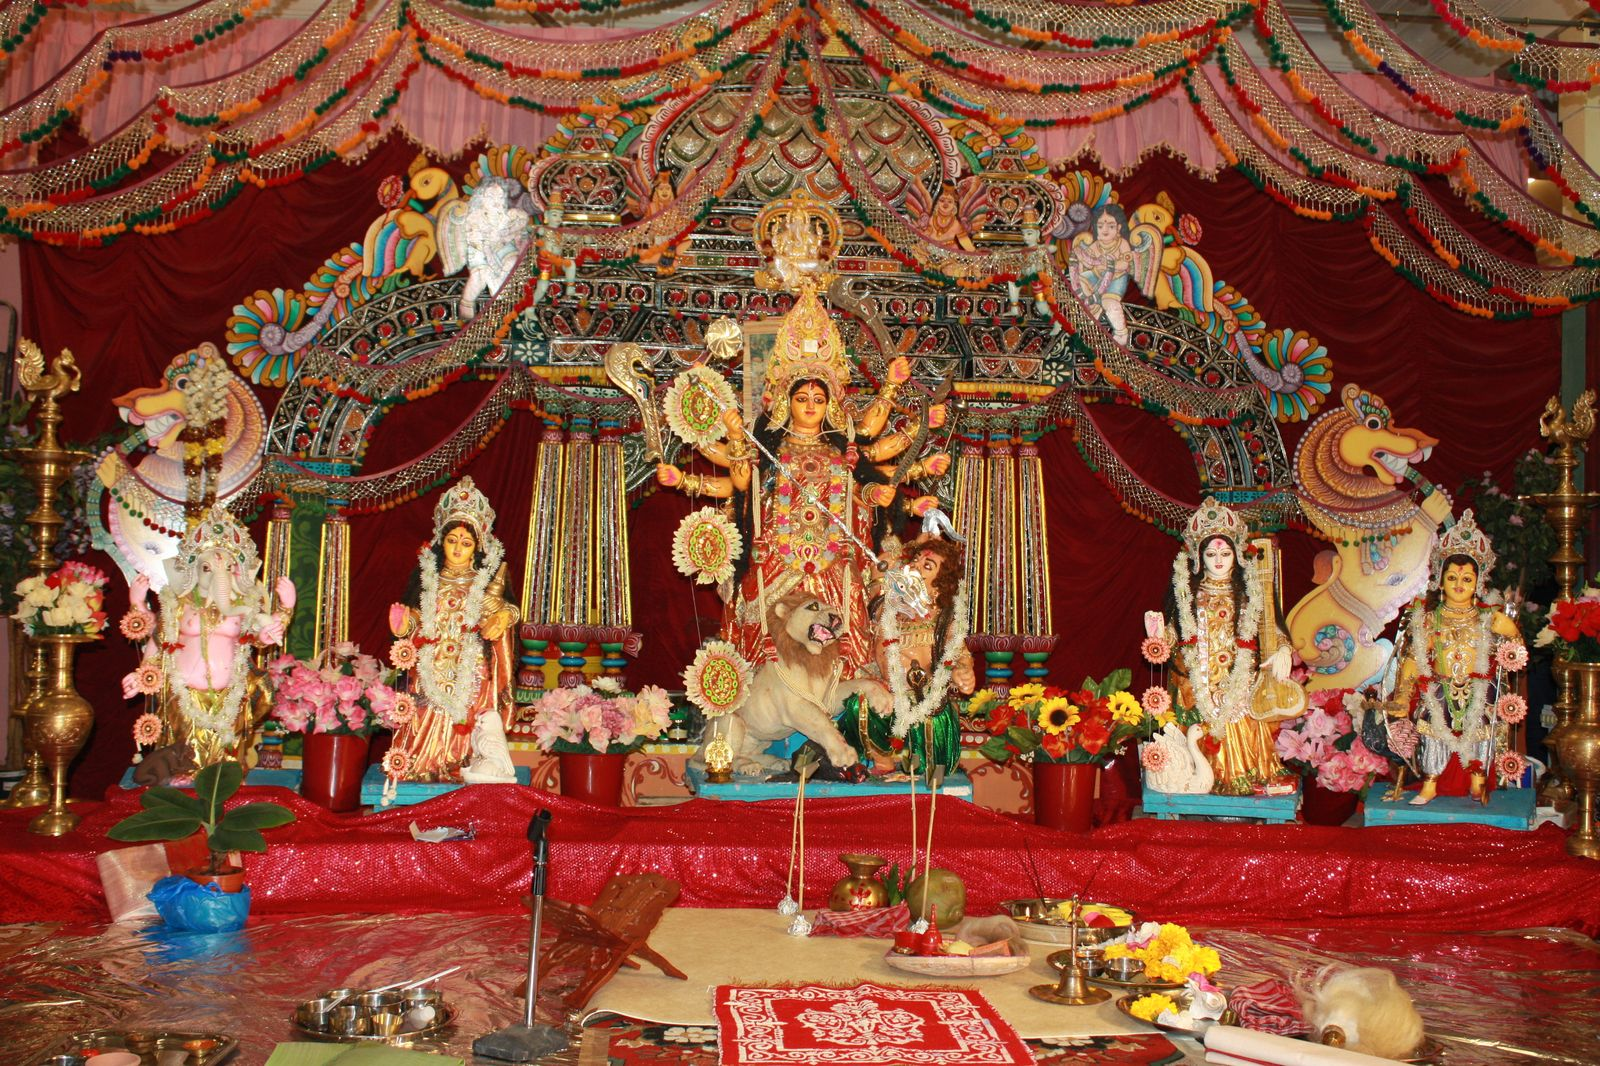 Durga Puja - Victory of Good over Evil